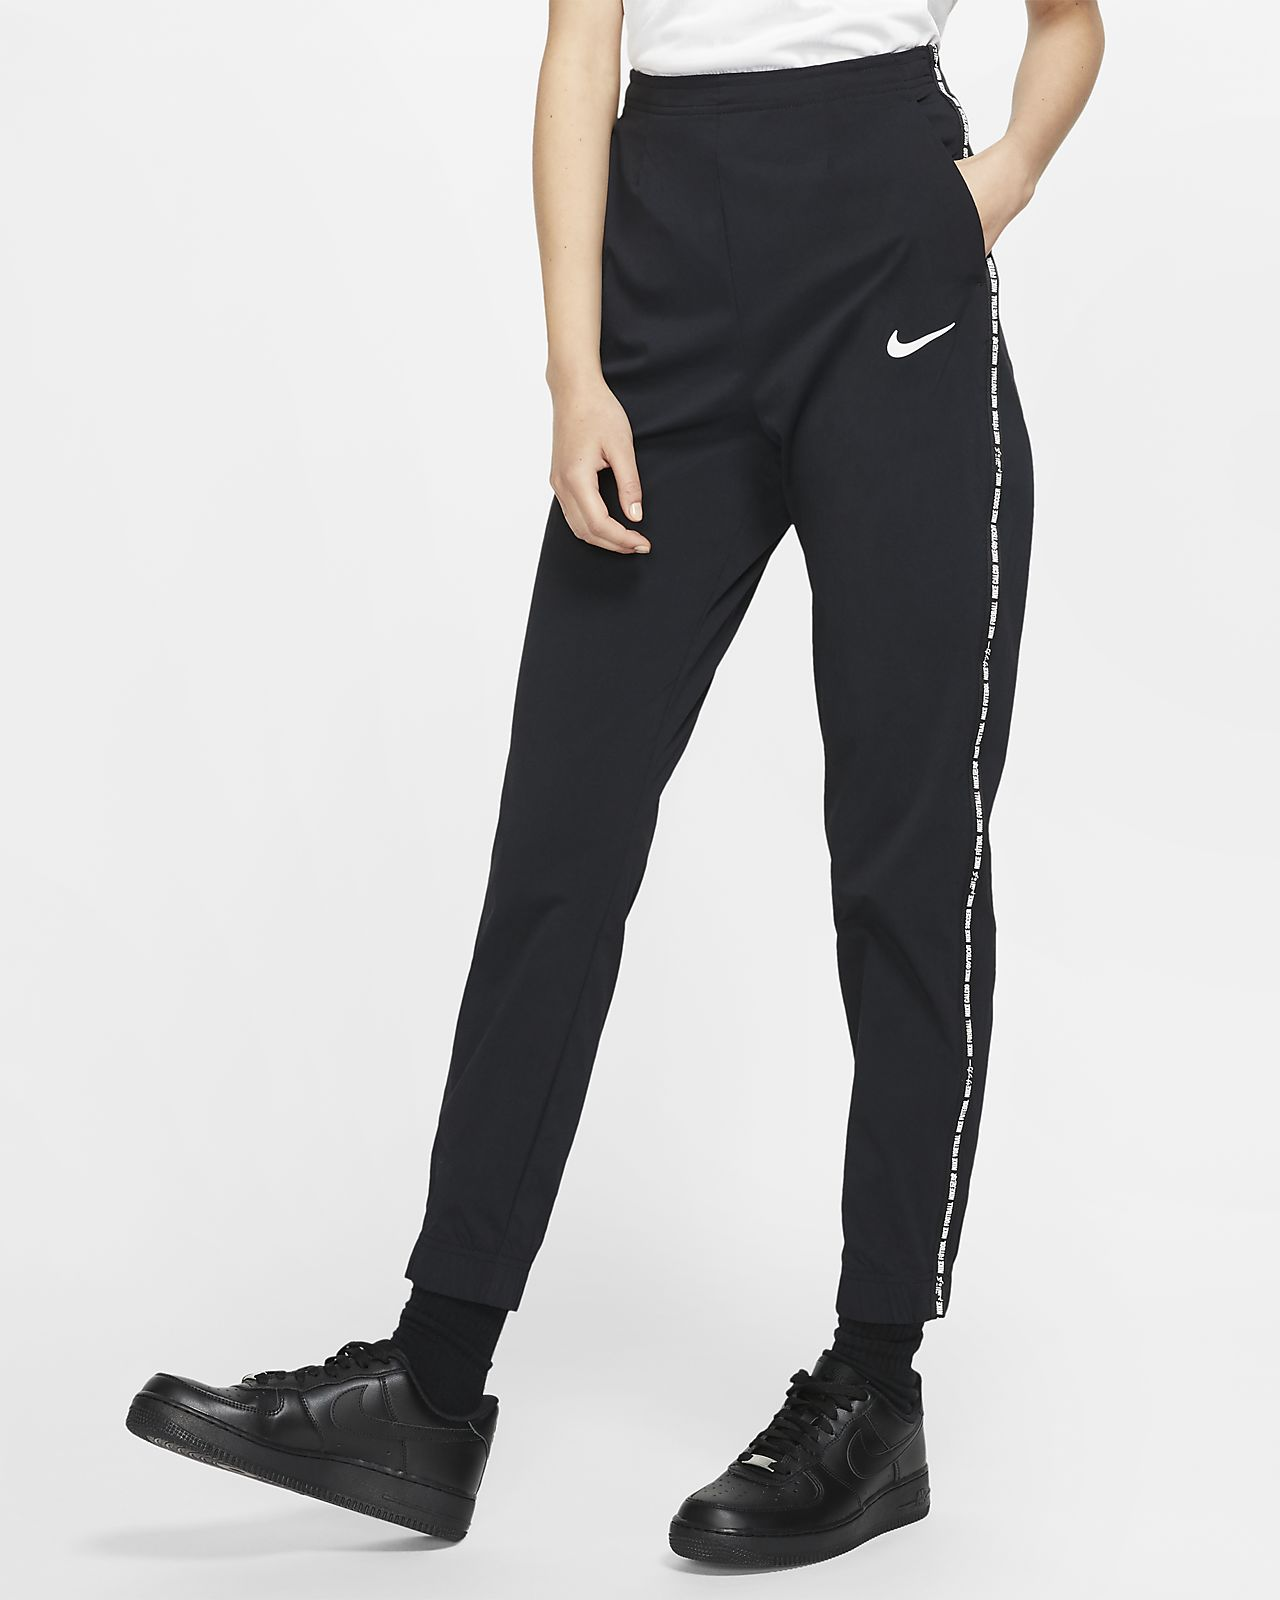 Nike F.C. Women's Football Pants